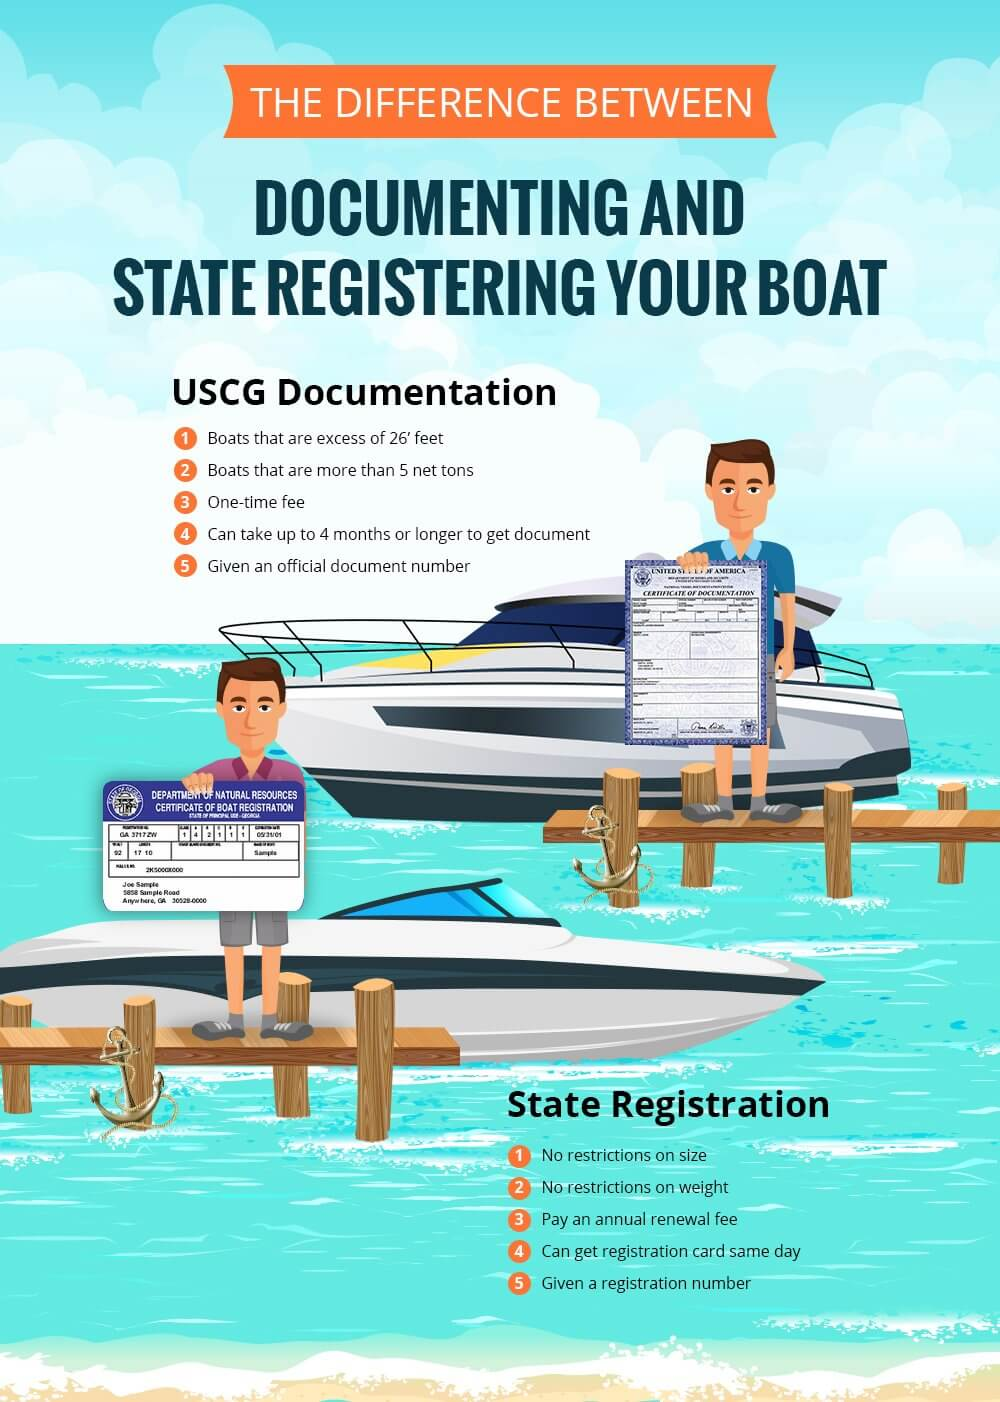 Should You Document Or State Register Your Boat?